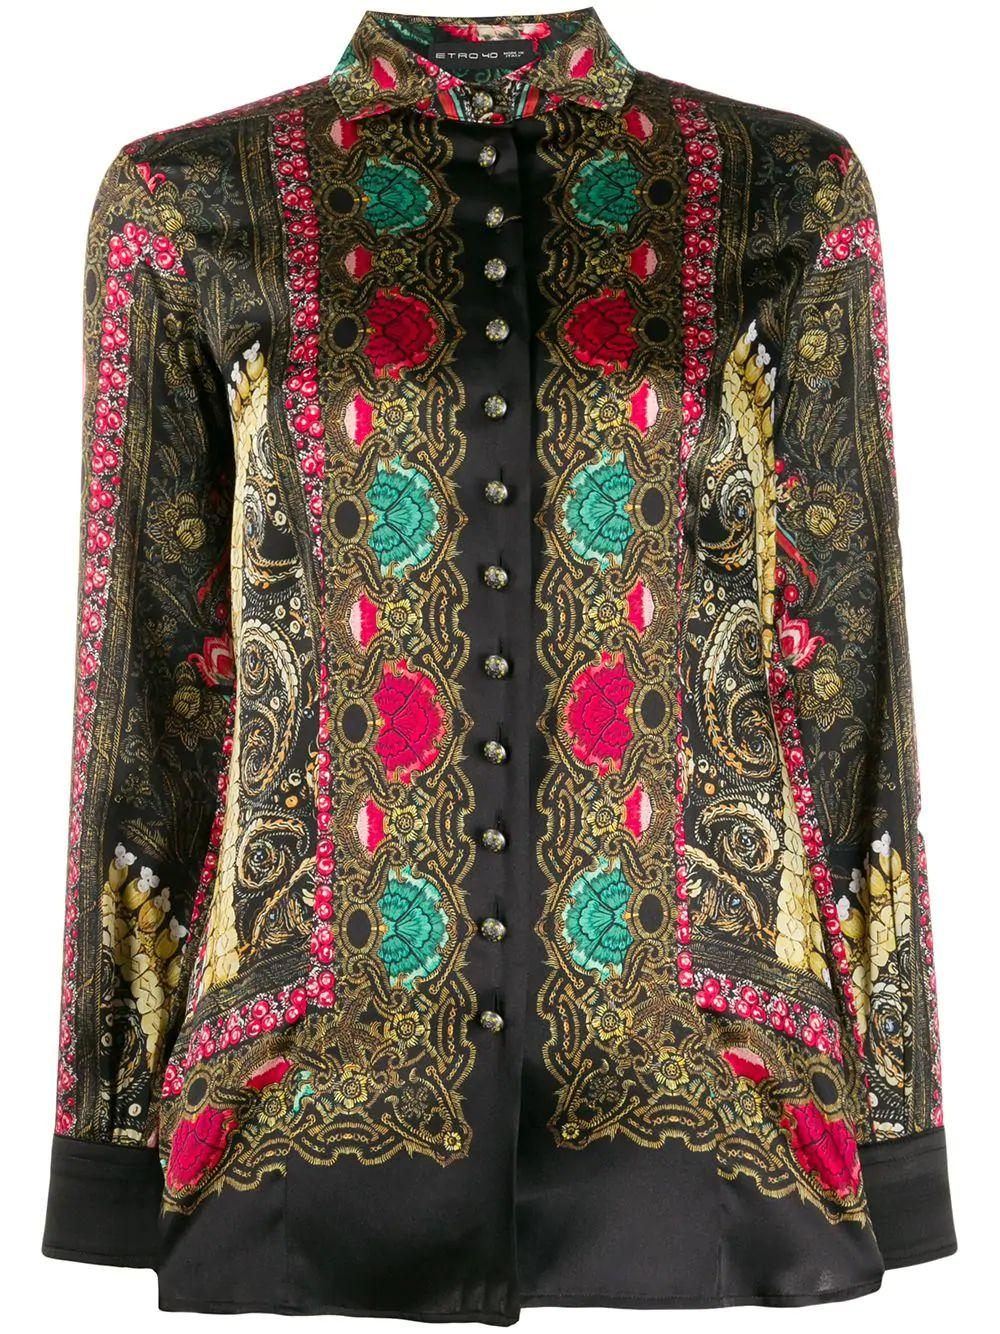 Multi Print Bouse With Gold Buttons.